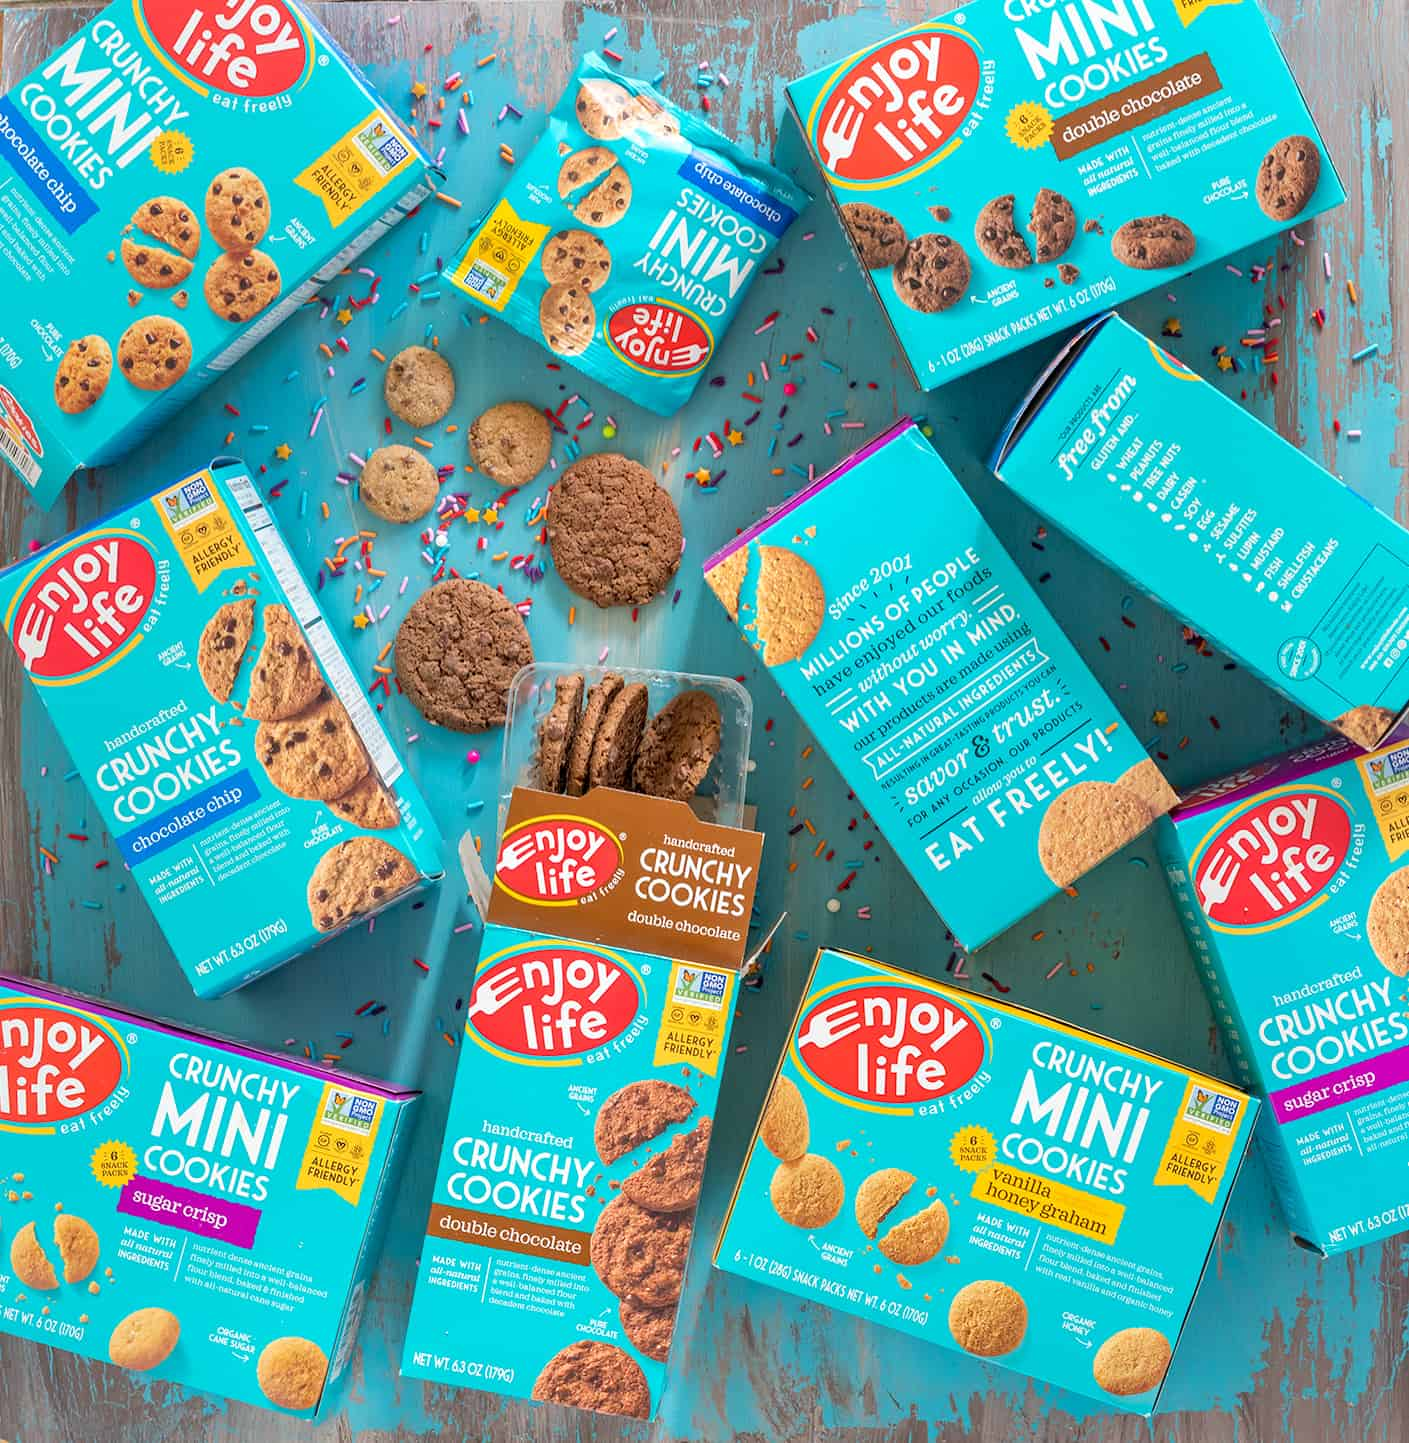 overhead of enjoy life crunchy cookies and mini cookies in packaging on a teal table, with sprinkles spilled all over